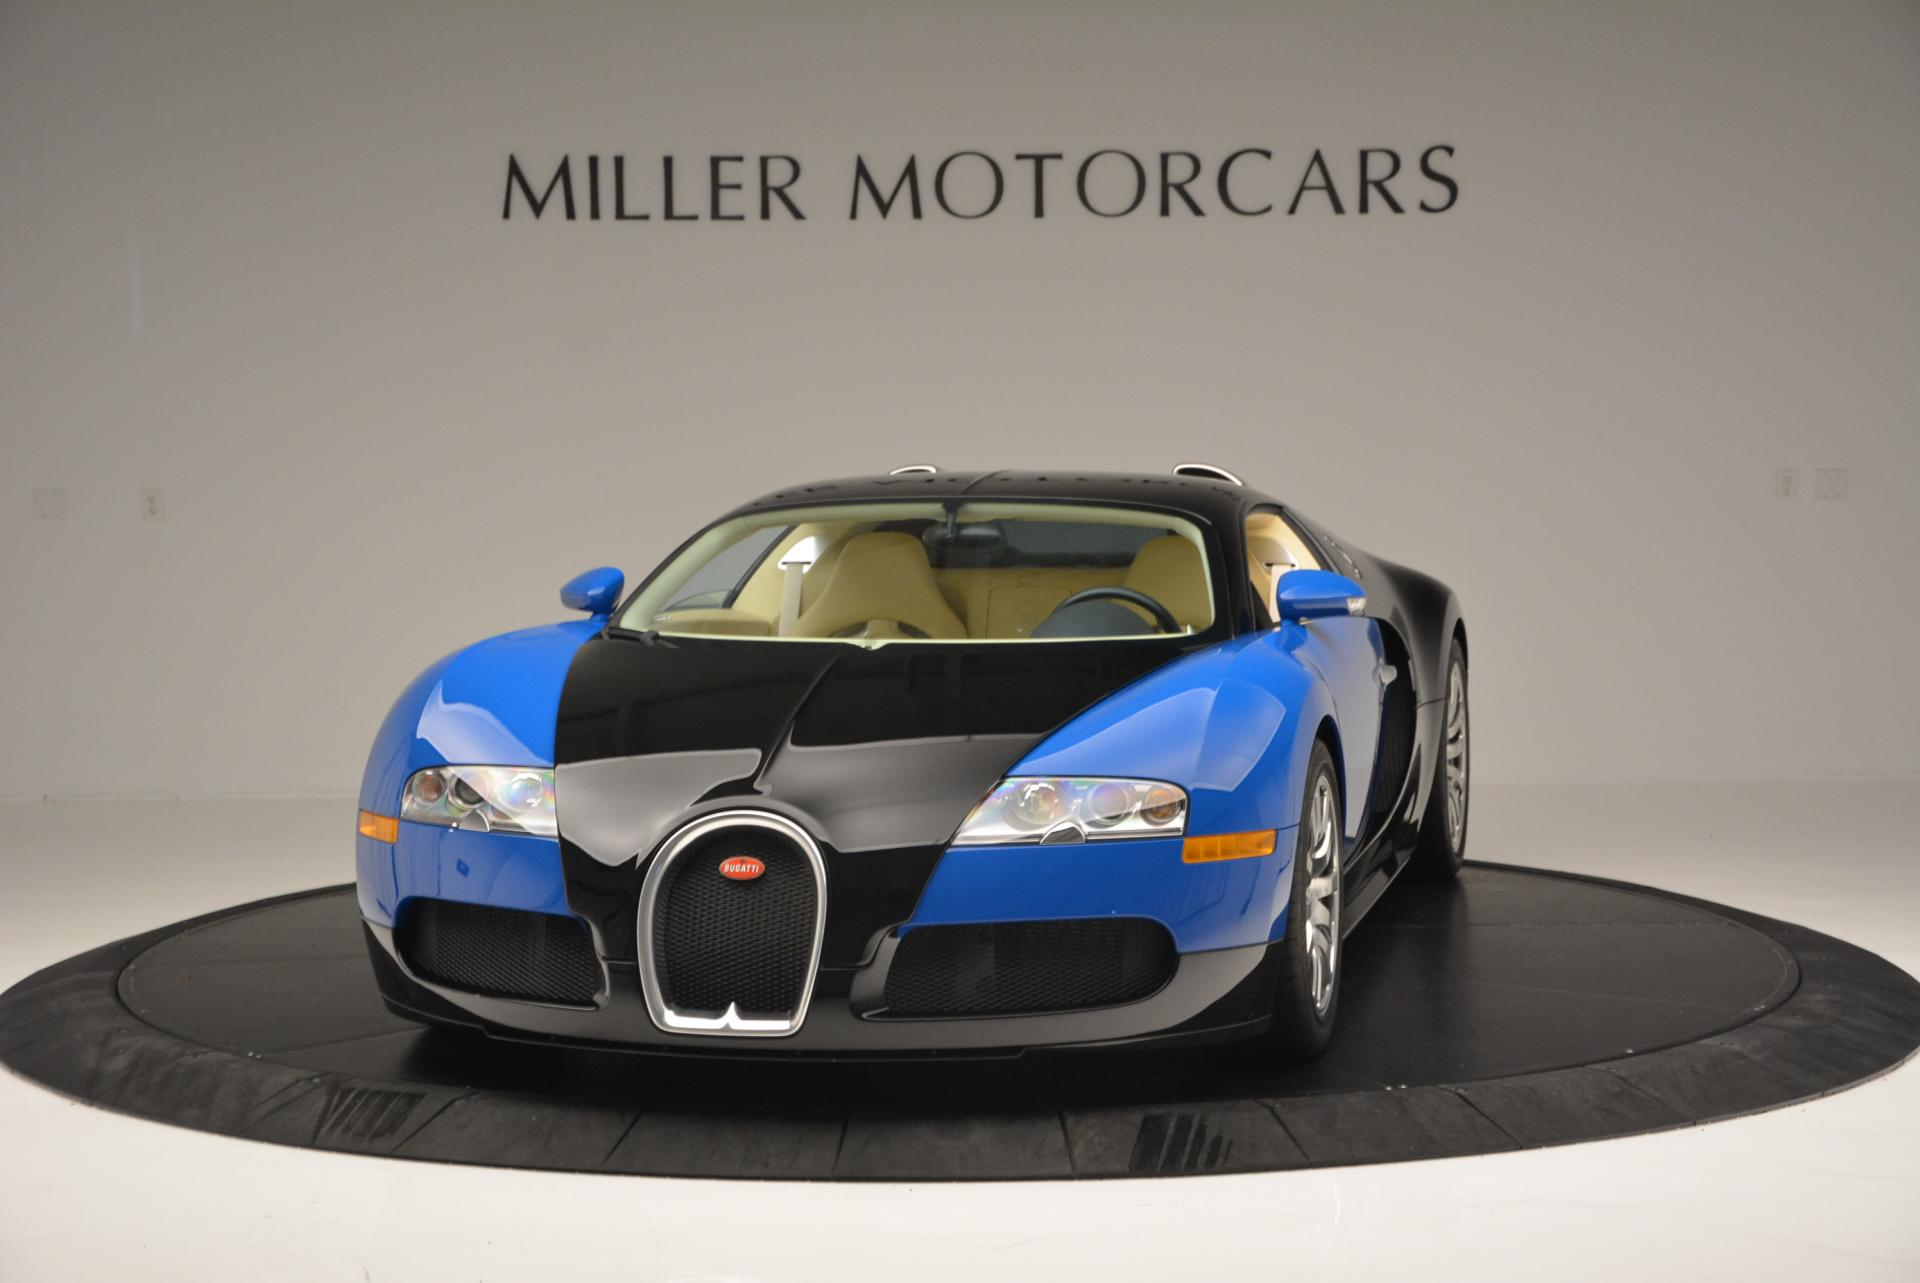 Used 2006 Bugatti Veyron 16.4 for sale Sold at Aston Martin of Greenwich in Greenwich CT 06830 1